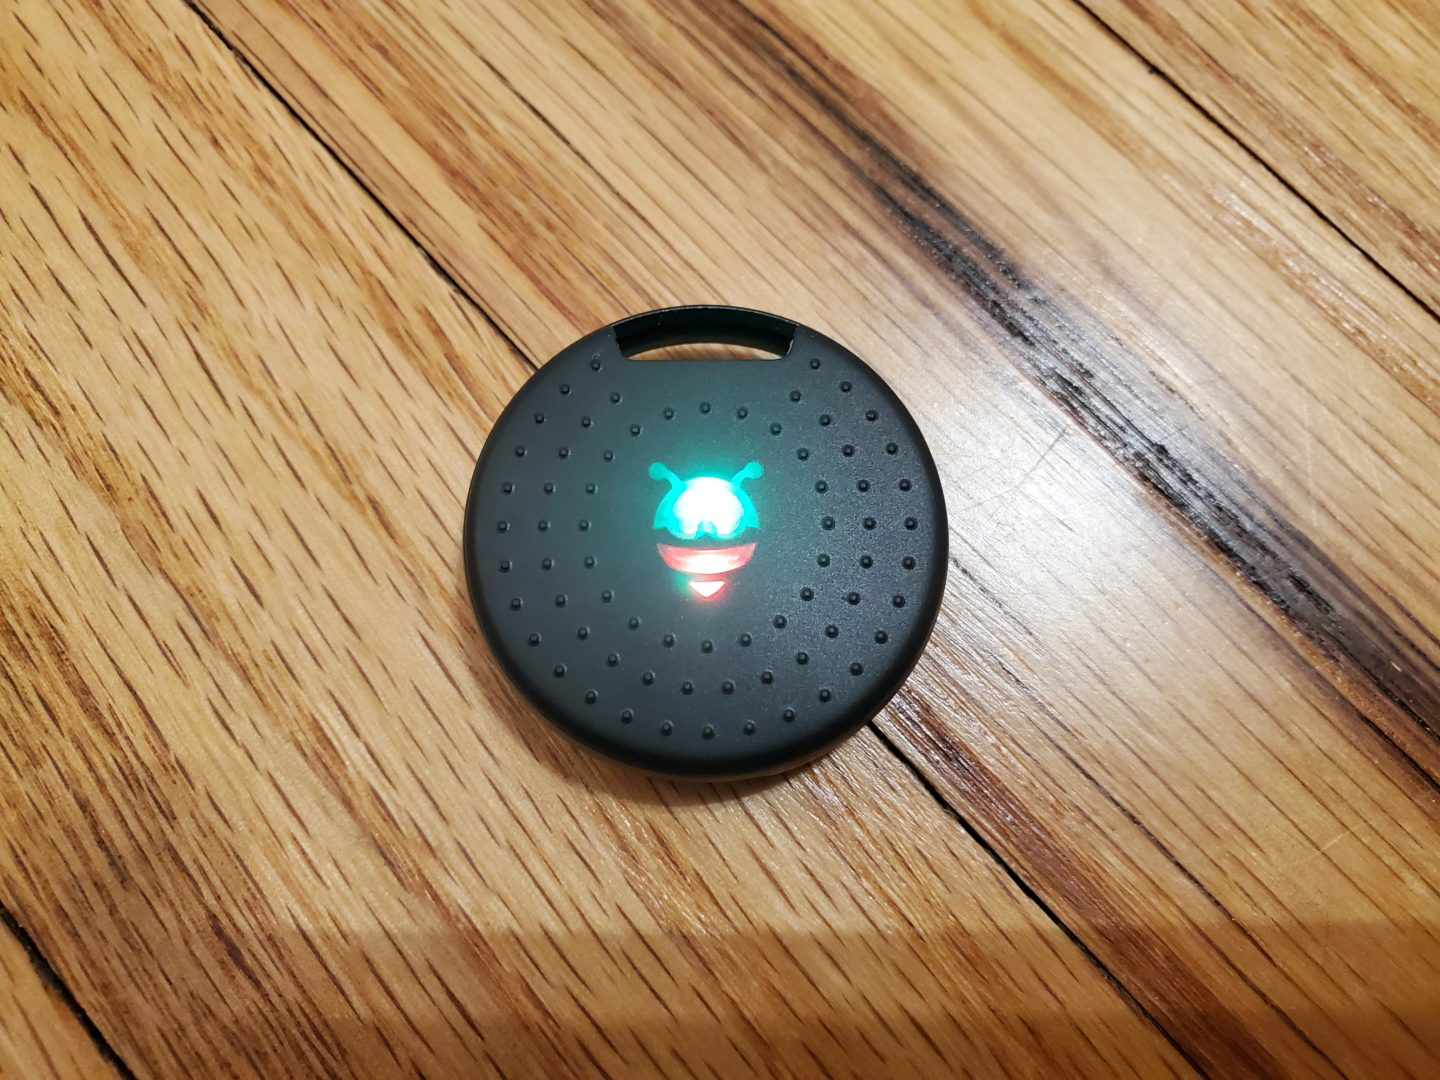 the front of the pebblebee tracker 2.0, where there is a green and red LED and the button, part of the PebbleBee Finder 2.0 and BlackCard Review